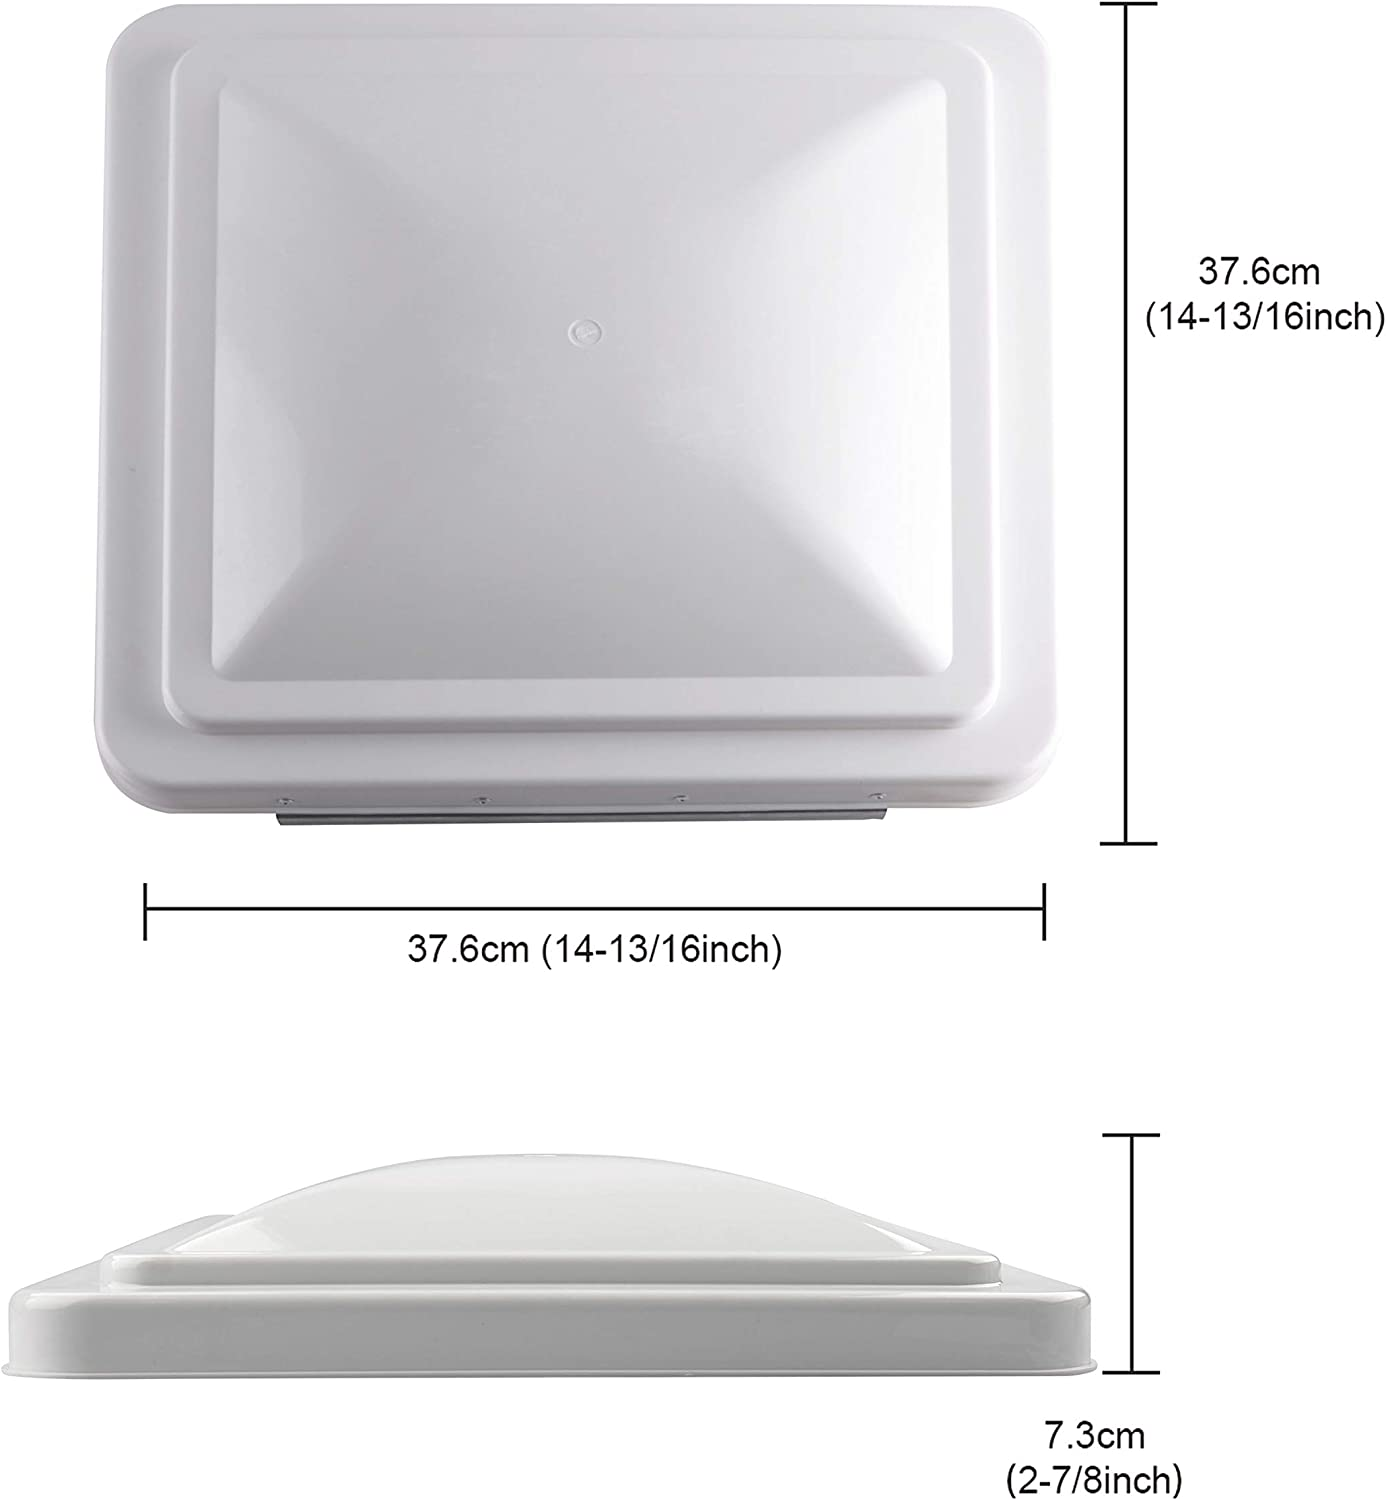 RVGUARD 14x14 RV Roof Vent Cover White Universal Replacement Vent Lid for Camper Trailer Motorhome